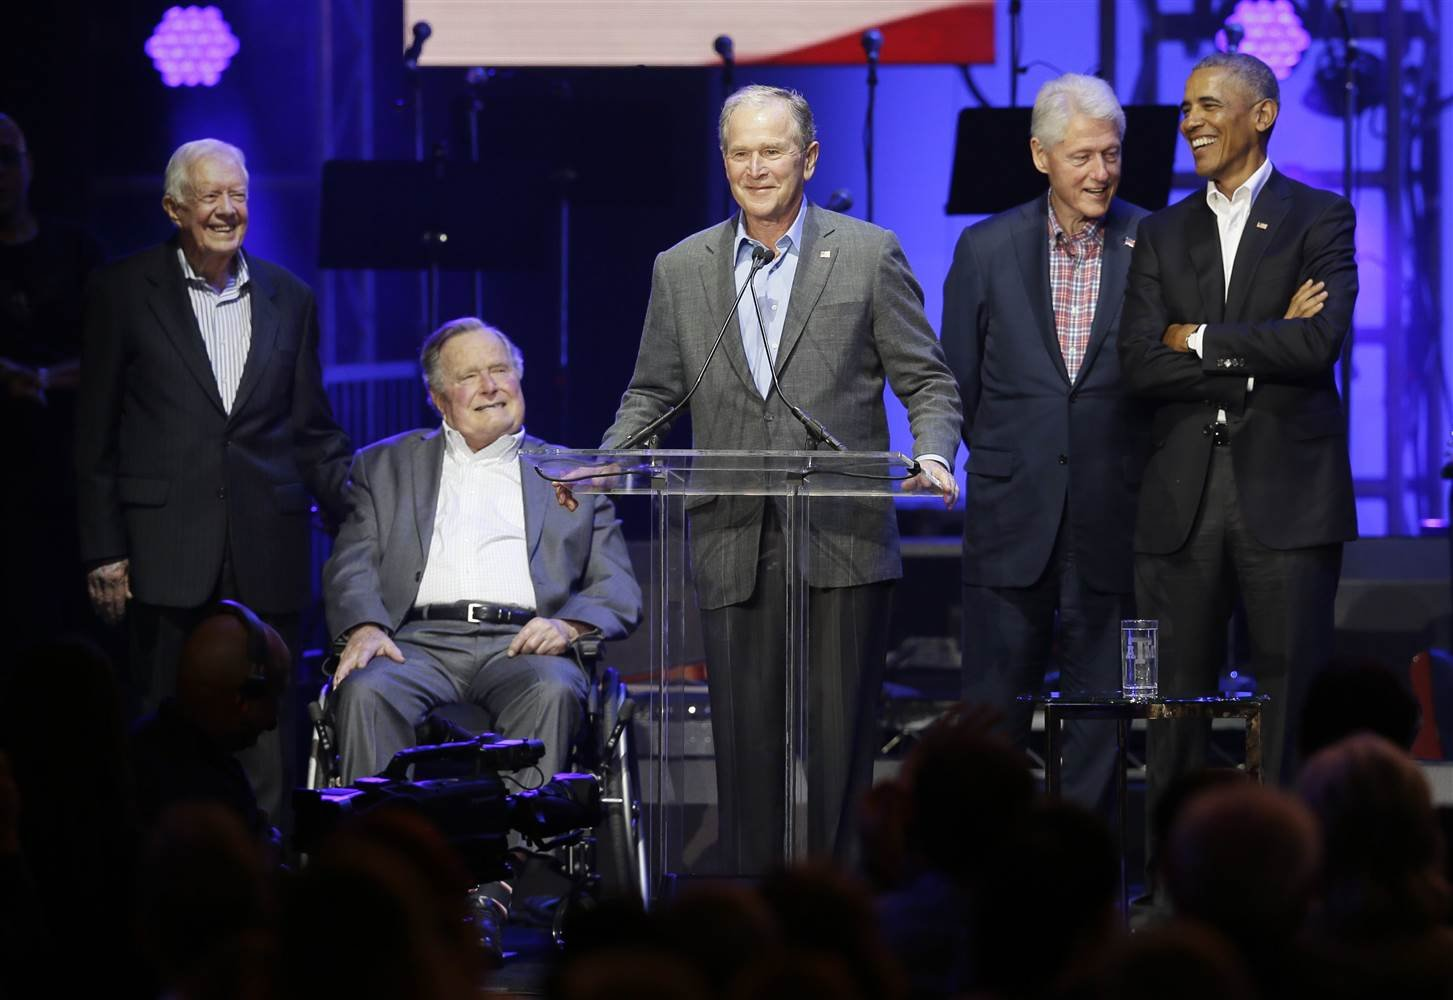 Former President George W. Bush, center, speaks as fellow former Presidents from right, Barack Obama, Bill Clinton, George H.W. Bush and Jimmy Carter look on during a hurricanes relief concert in College Station, Texas, Saturday, Oct. 21, 2017.